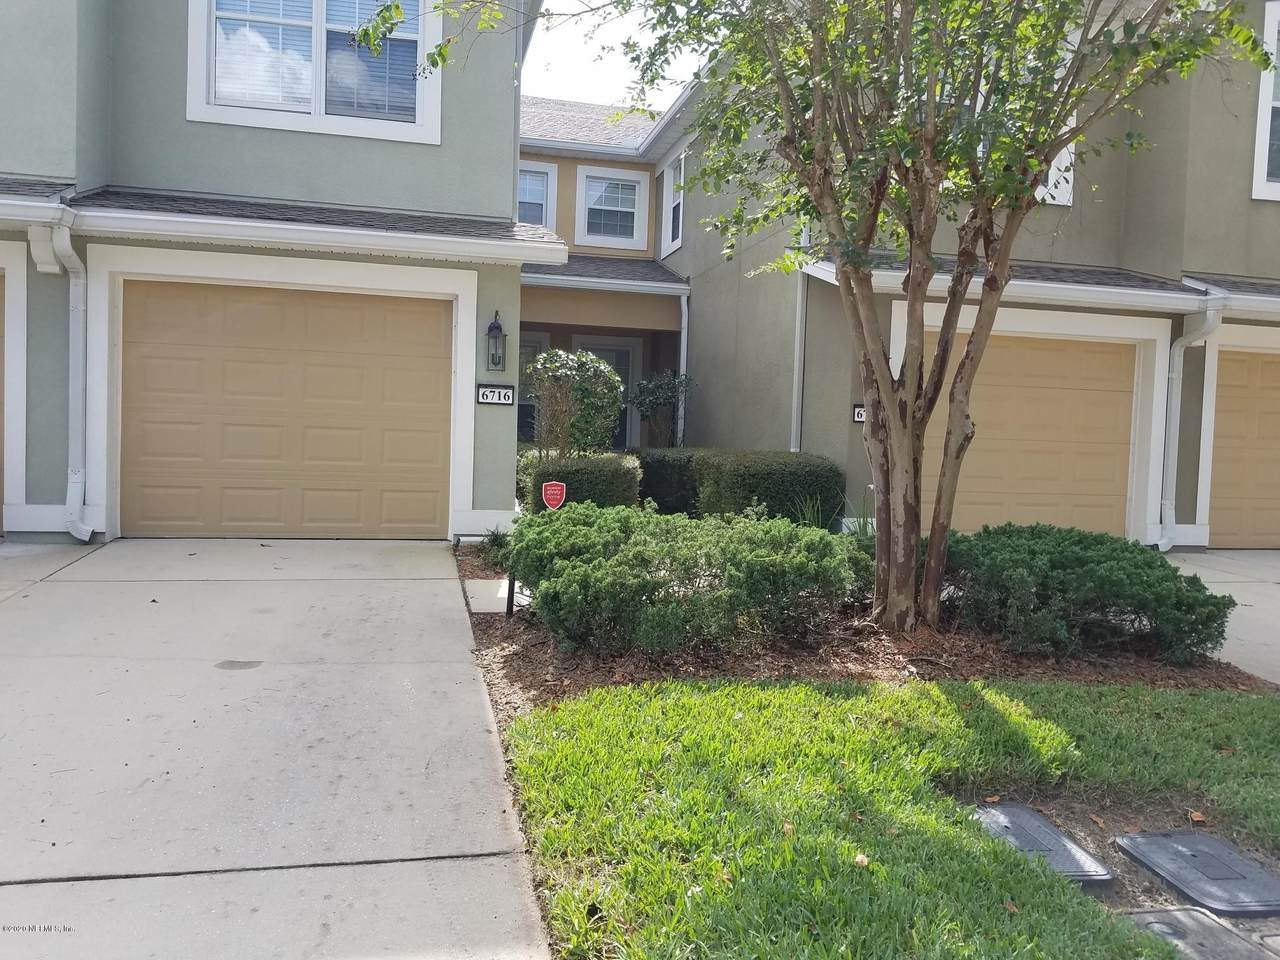 6716 White Blossom Cir - Photo 1